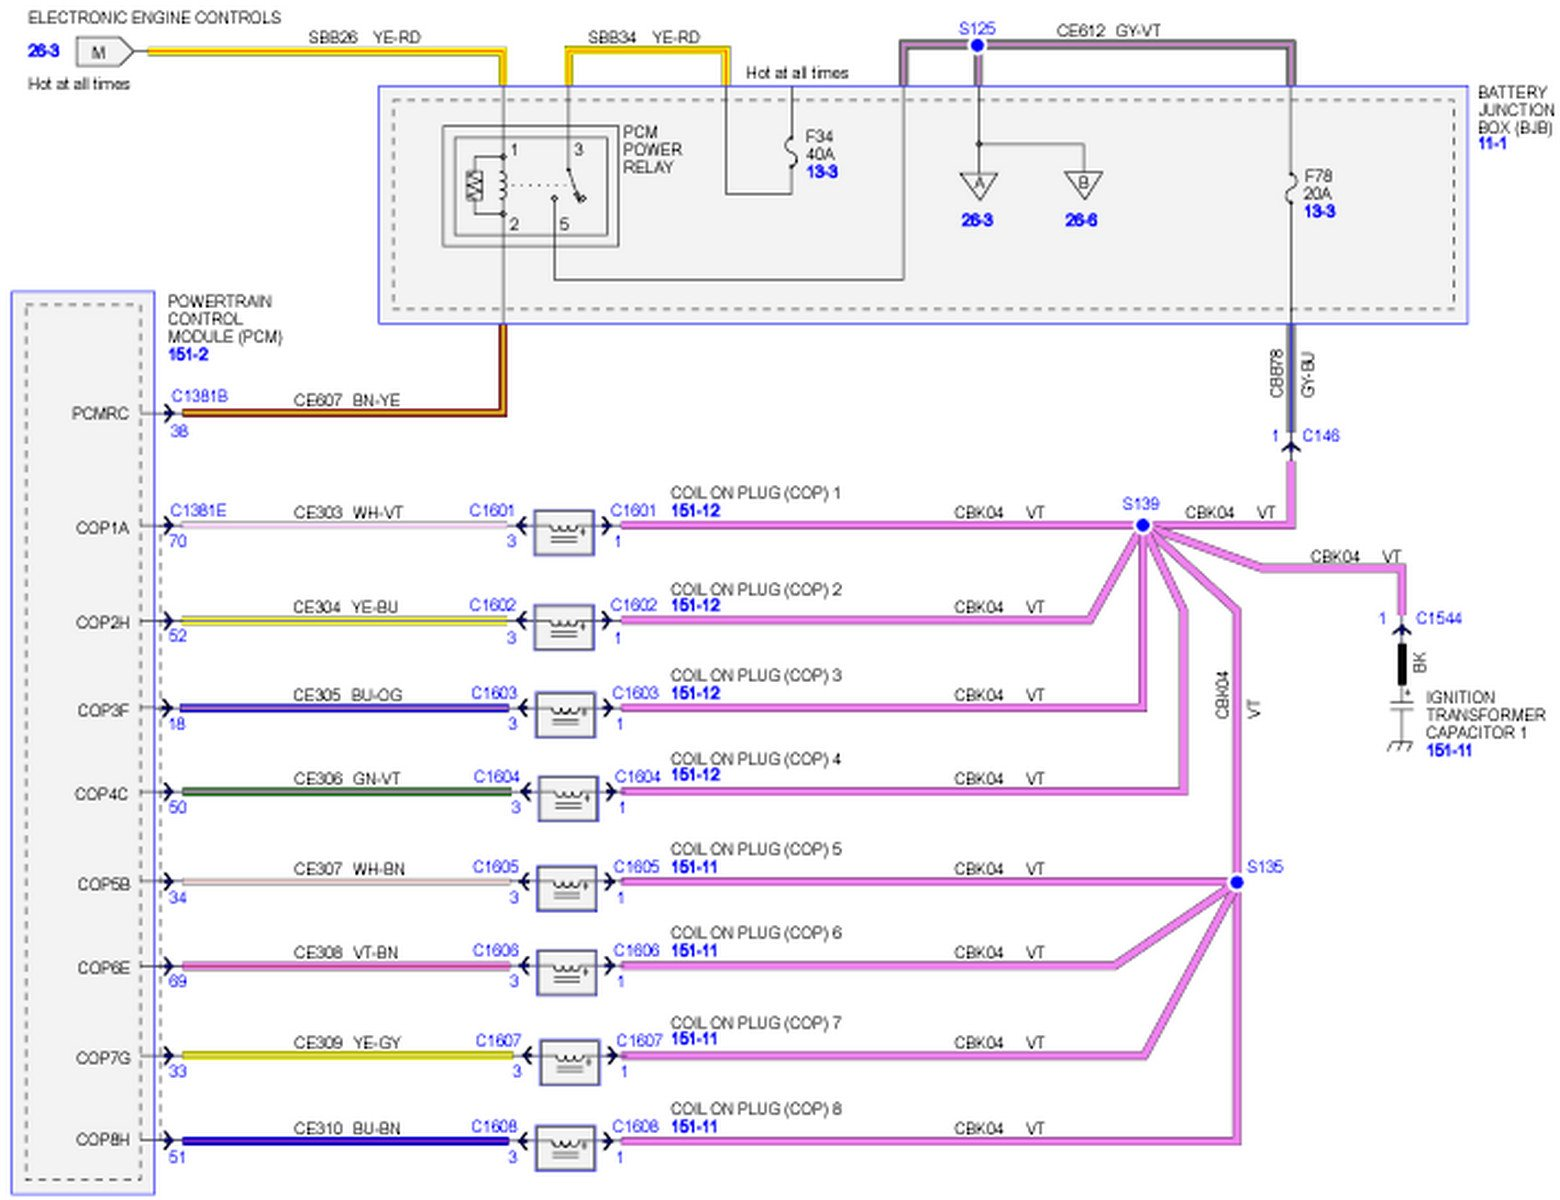 2010 F150 Wiring Diagram : I need a pcm wiring schematic for f with